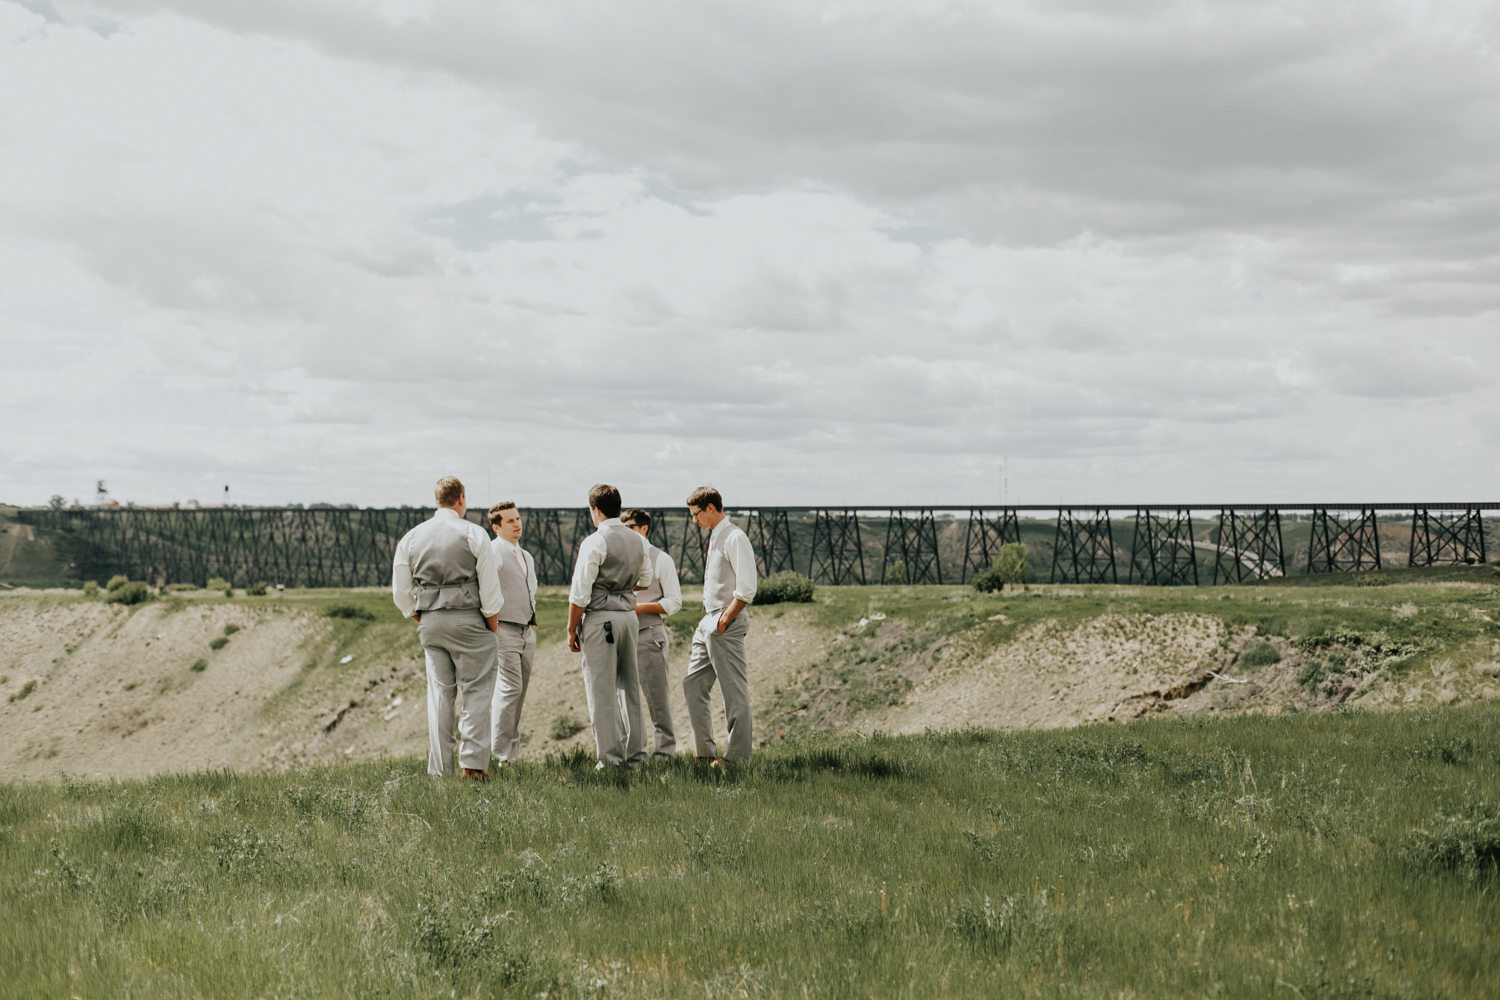 norland-estate-wedding-lethbridge-photography-love-and-be-loved-photographer-picture-image-photo-90.jpg